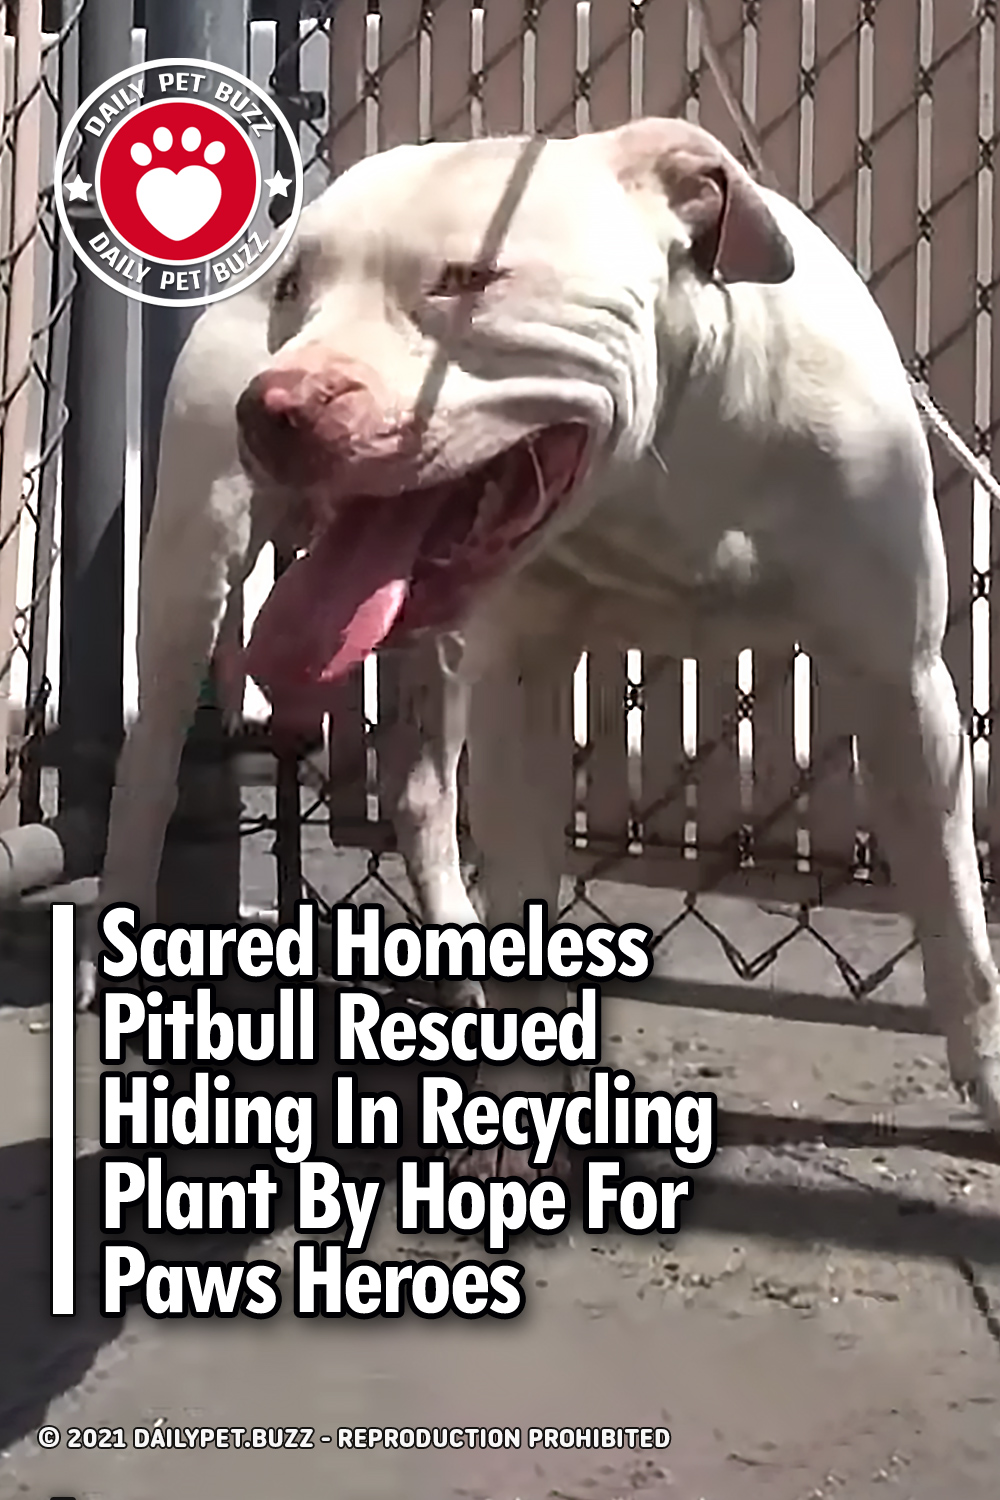 Scared Homeless Pitbull Rescued Hiding In Recycling Plant By Hope For Paws Heroes